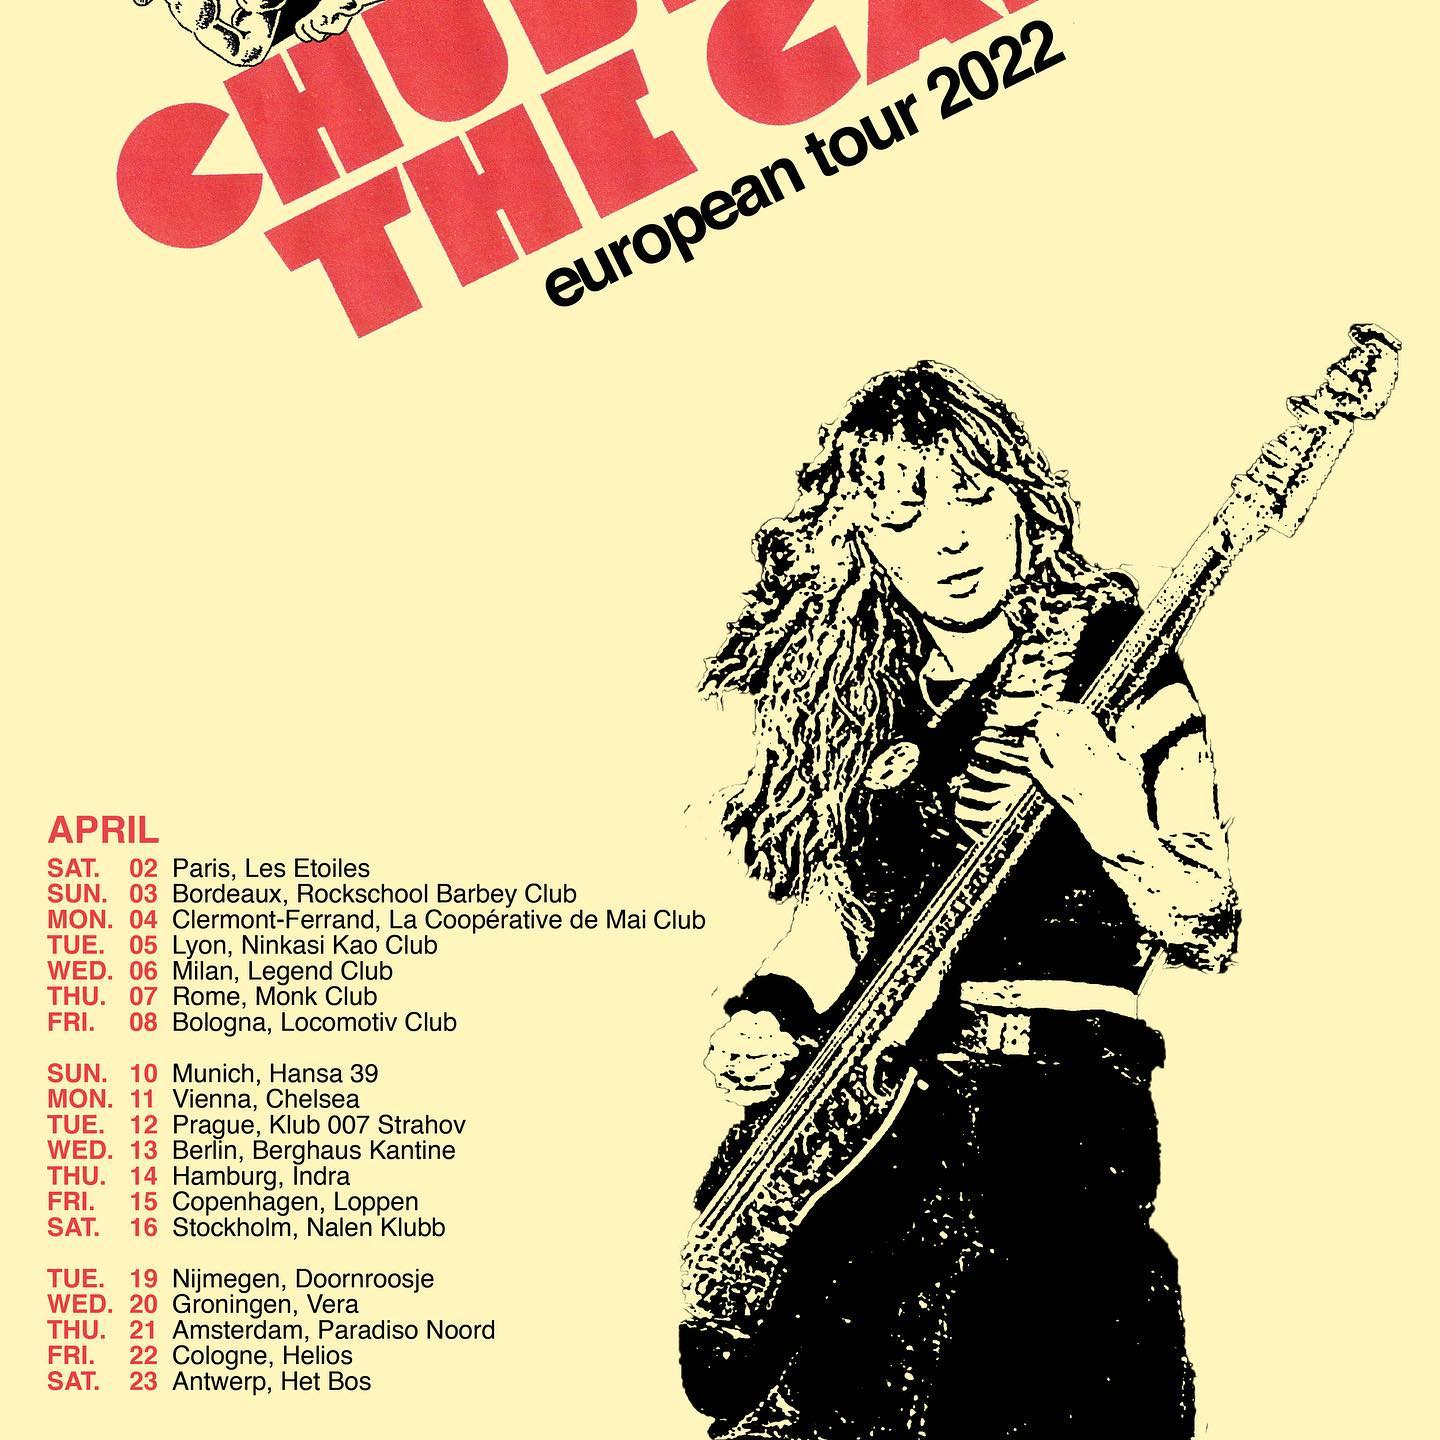 Chubby And The Gang - Europa-Tour 2022